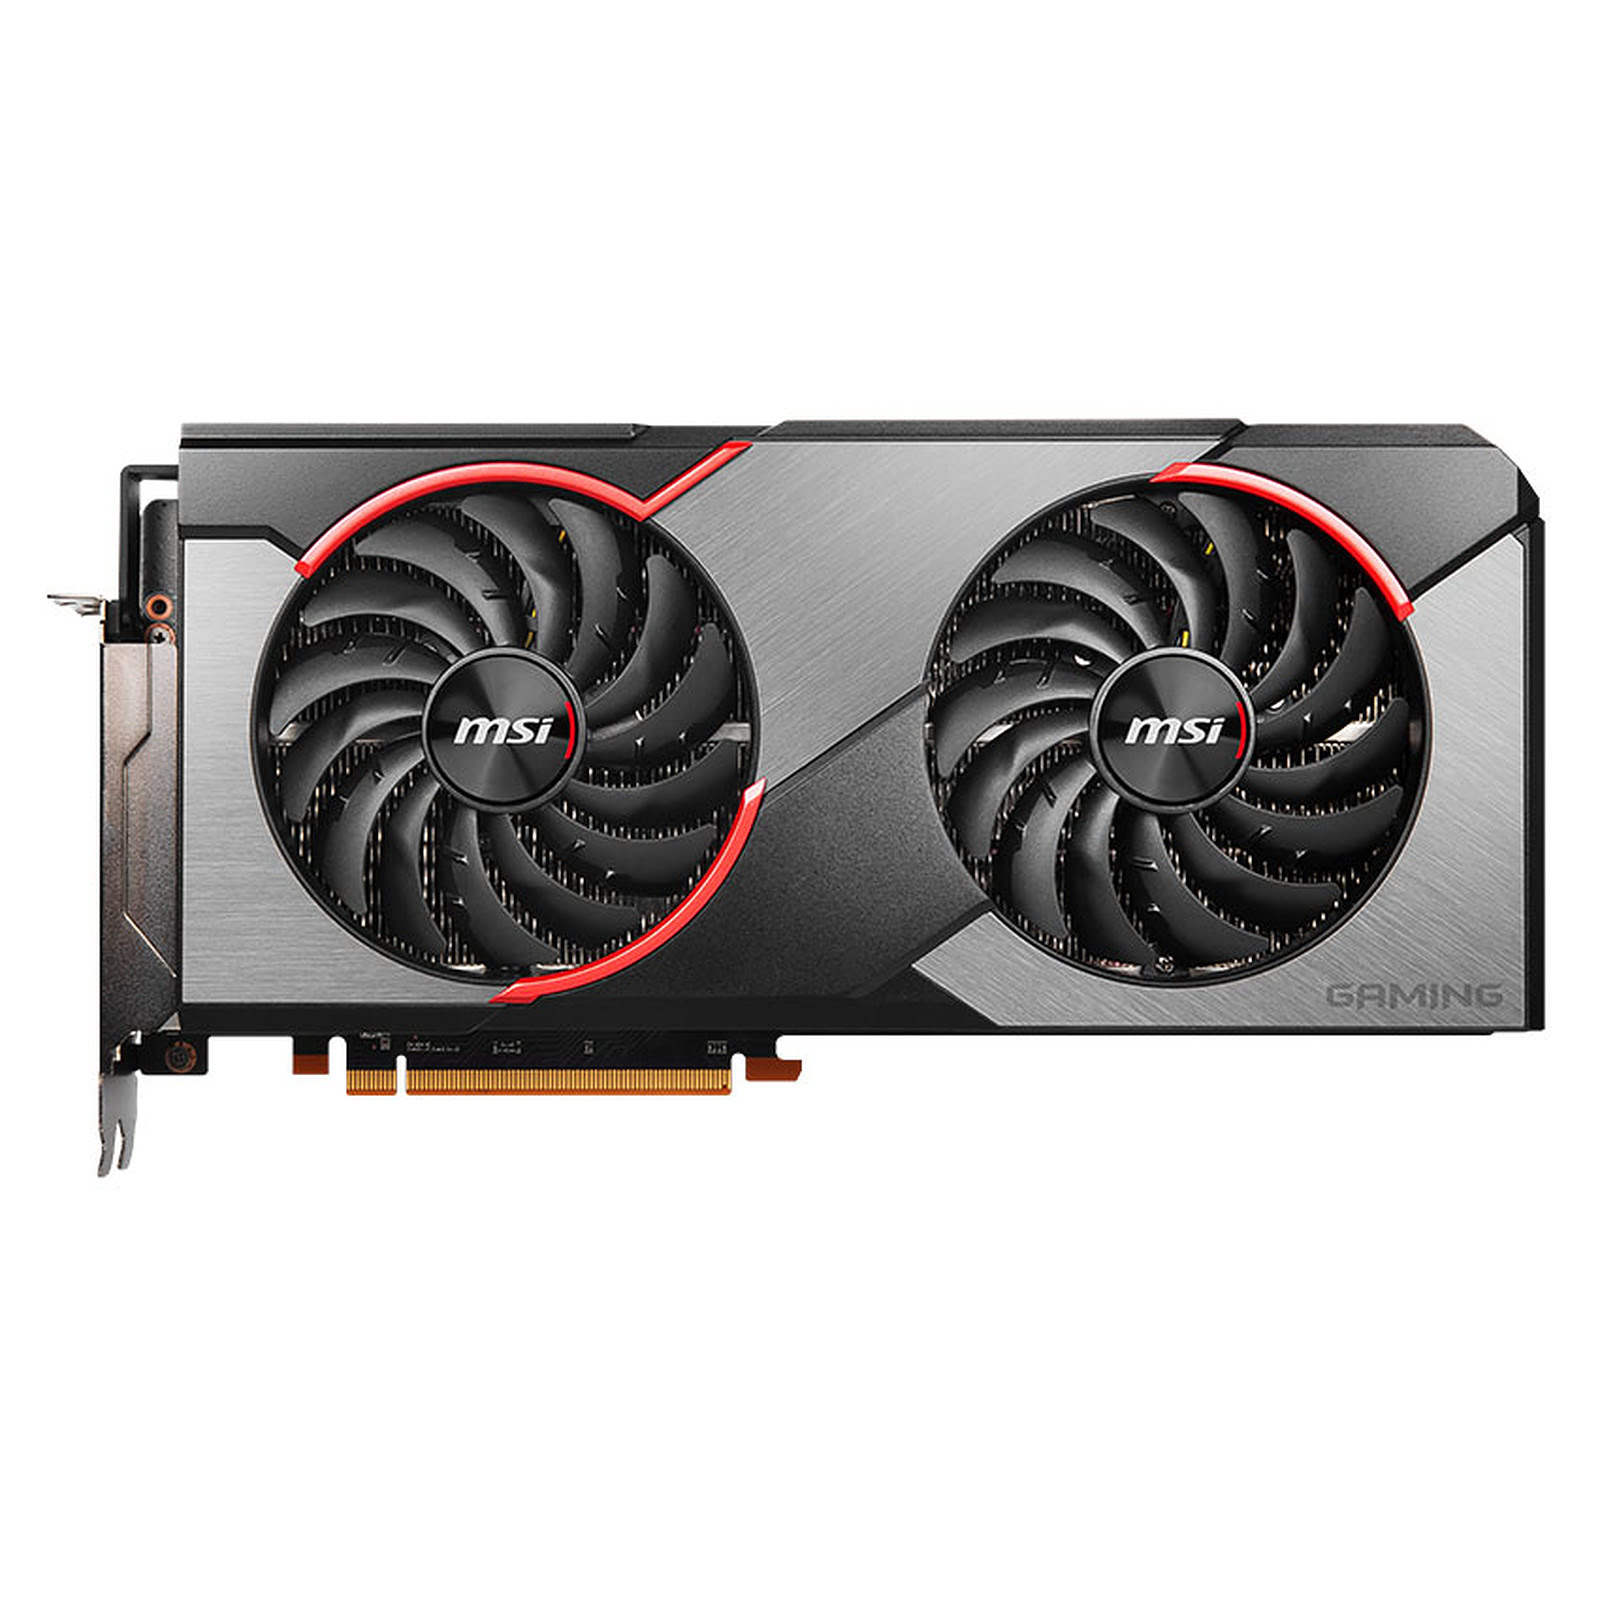 MSI RX 5700 XT GAMING X 8Go - Carte graphique MSI - Cybertek.fr - 4